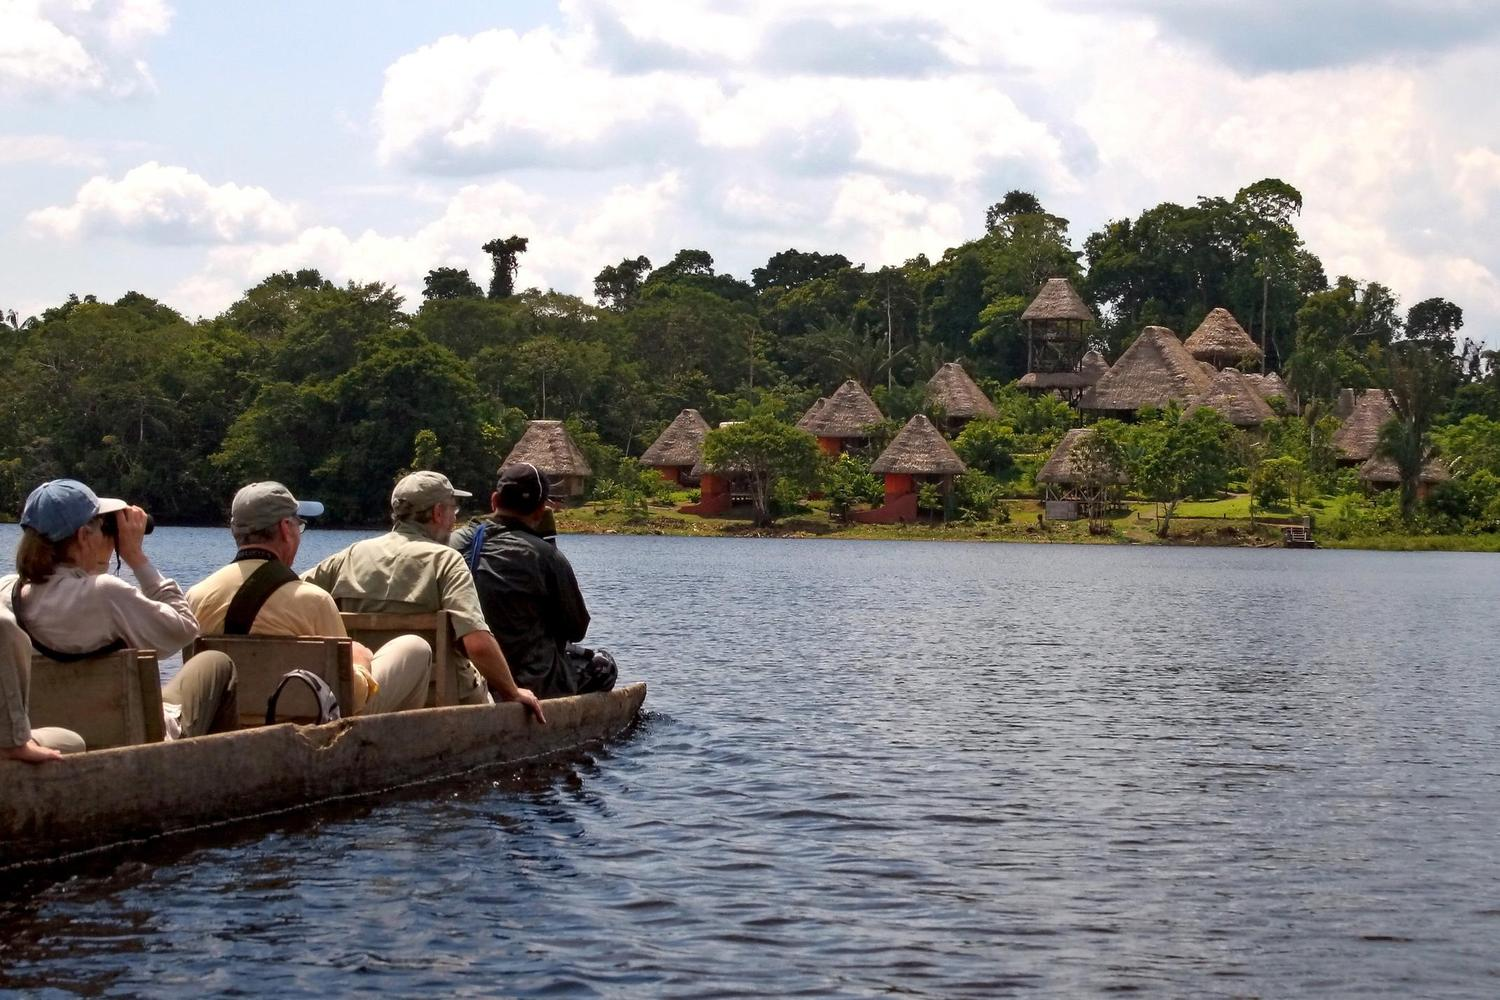 Approaching the Napo Wildlife Centre Lodge in the Ecuadorian Amazon